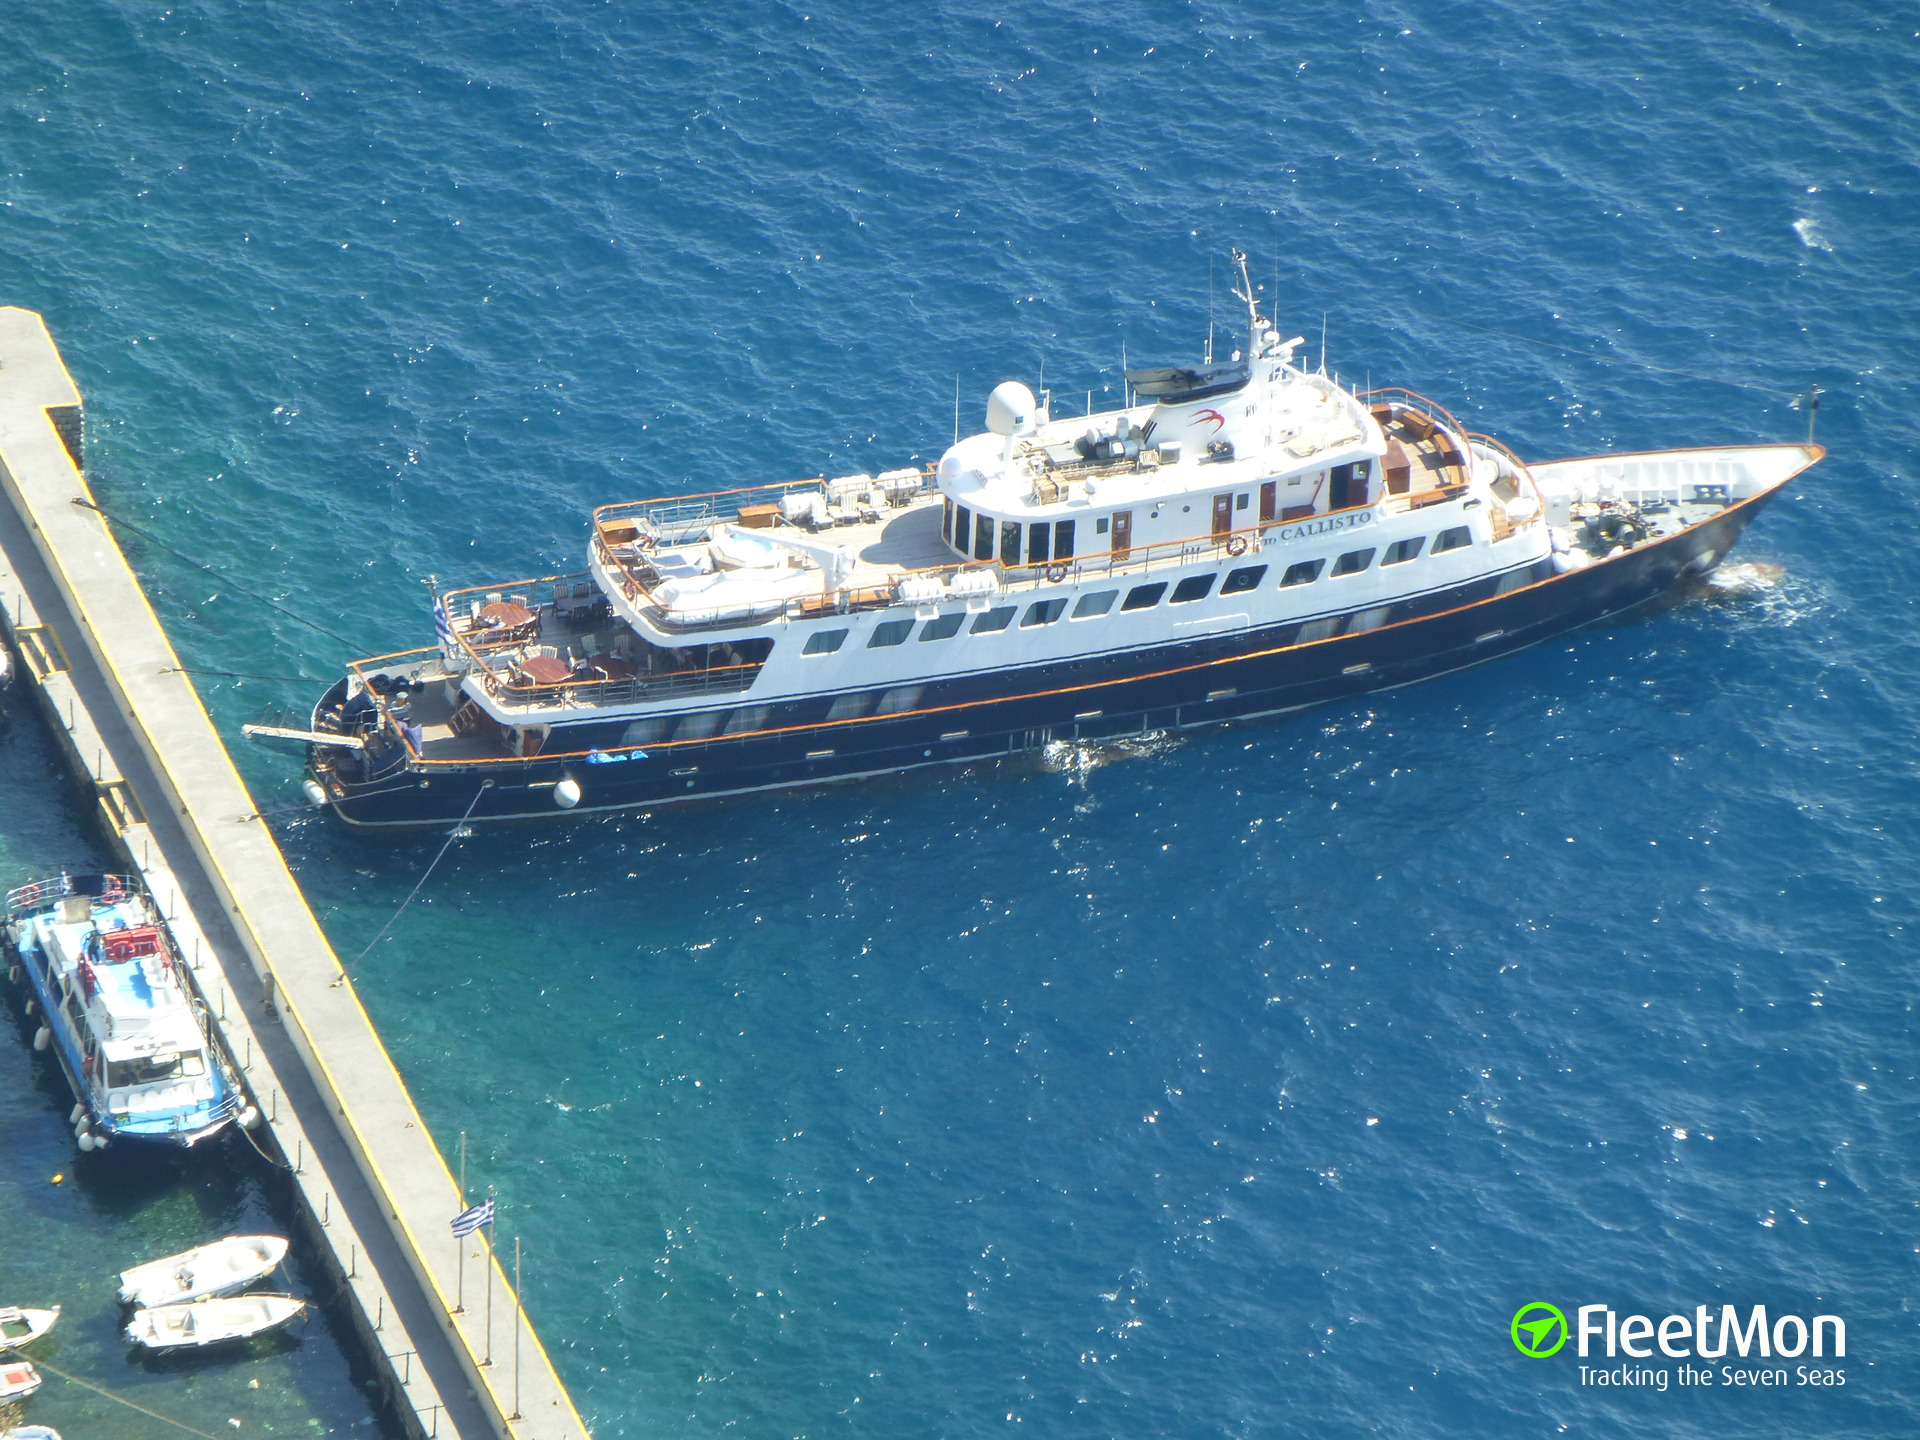 Passenger vessel TOCALLISTO allided with pleasure boats